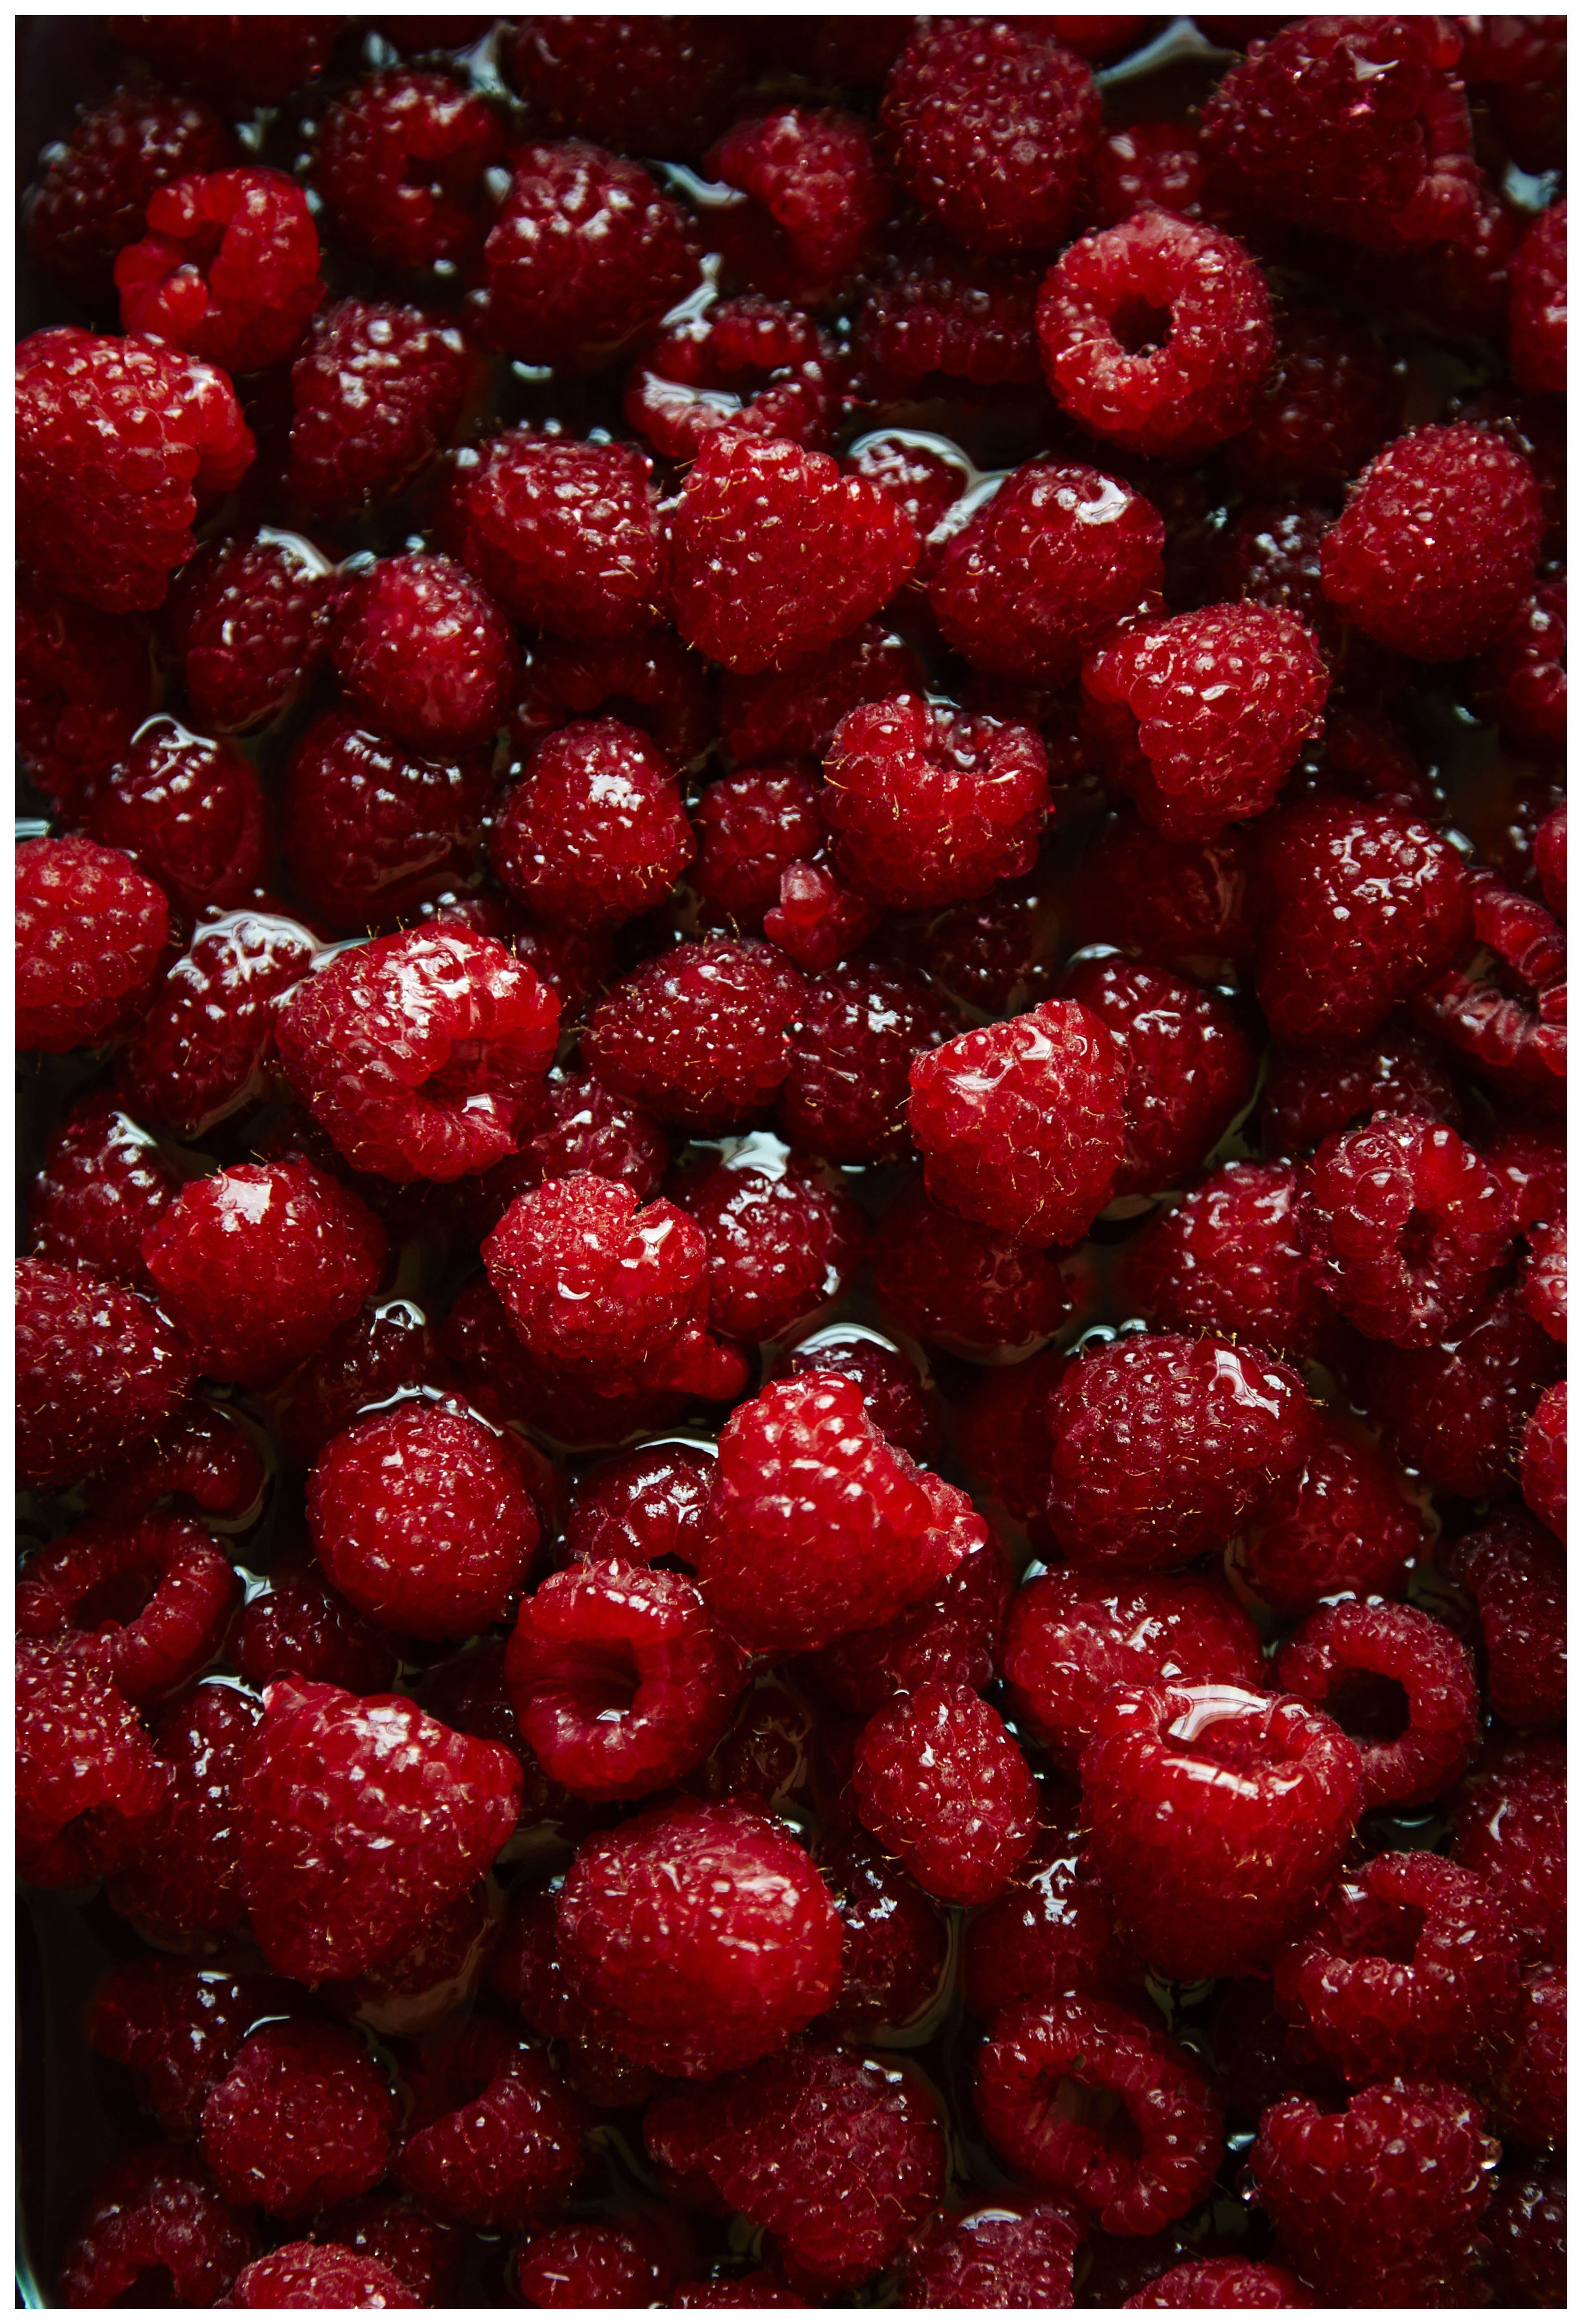 CL_DDD_Back_Mascerated Berries3.jpg